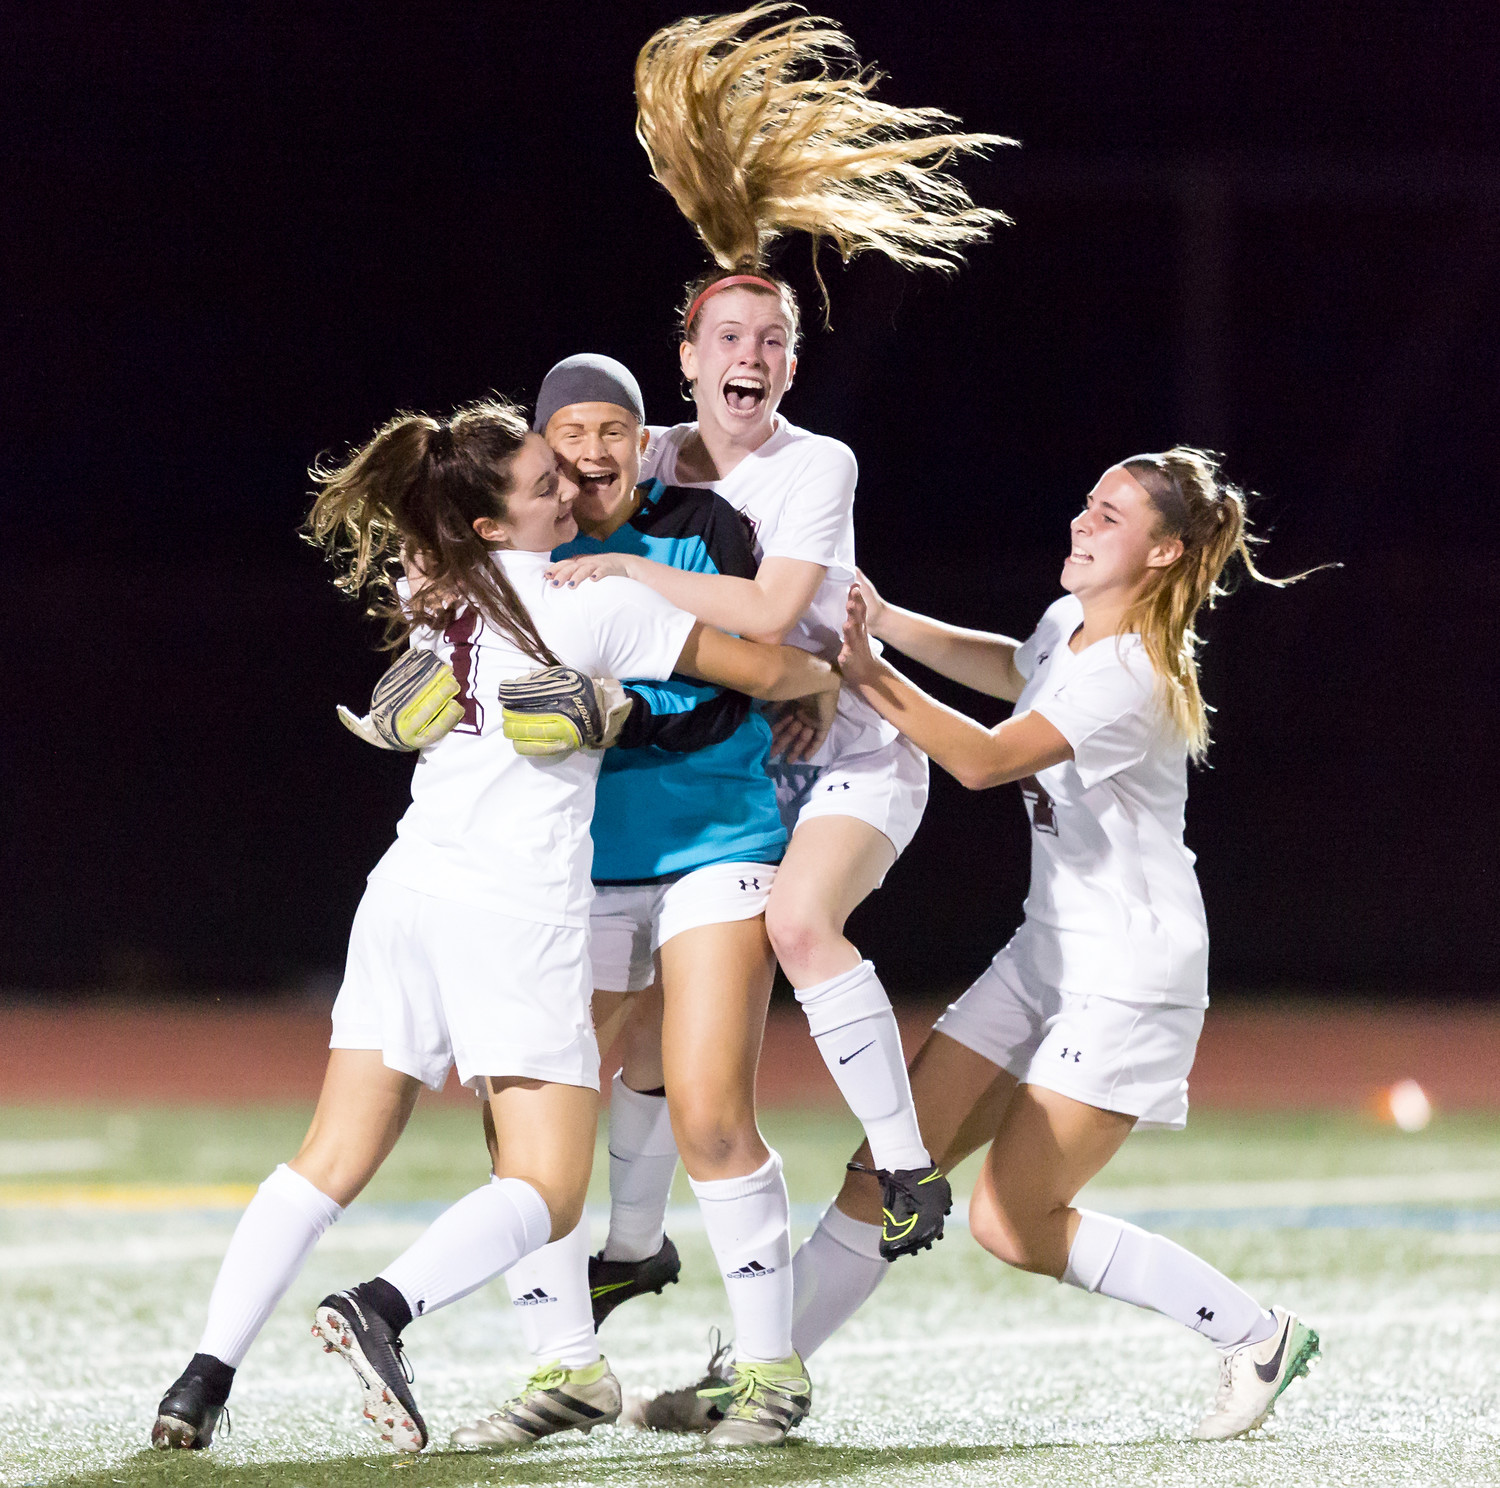 Freelancer John Heckman earned third place for Sports Feature Photo for this one of the North Shore High School girls' soccer team celebrating after a championship game.